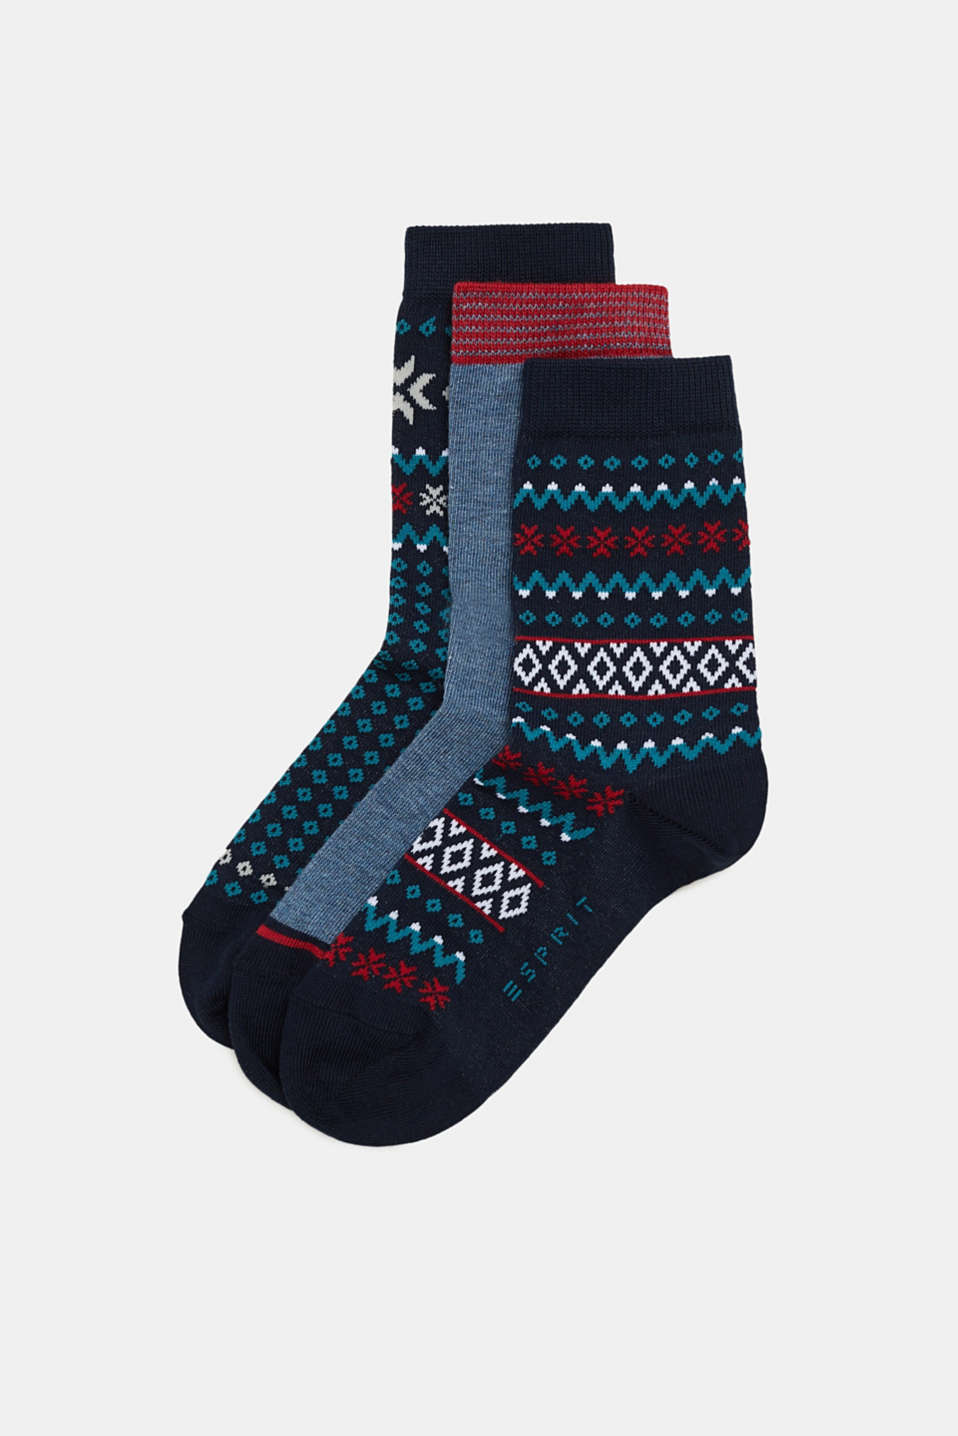 Esprit - Three pack of socks with a mix of patterns